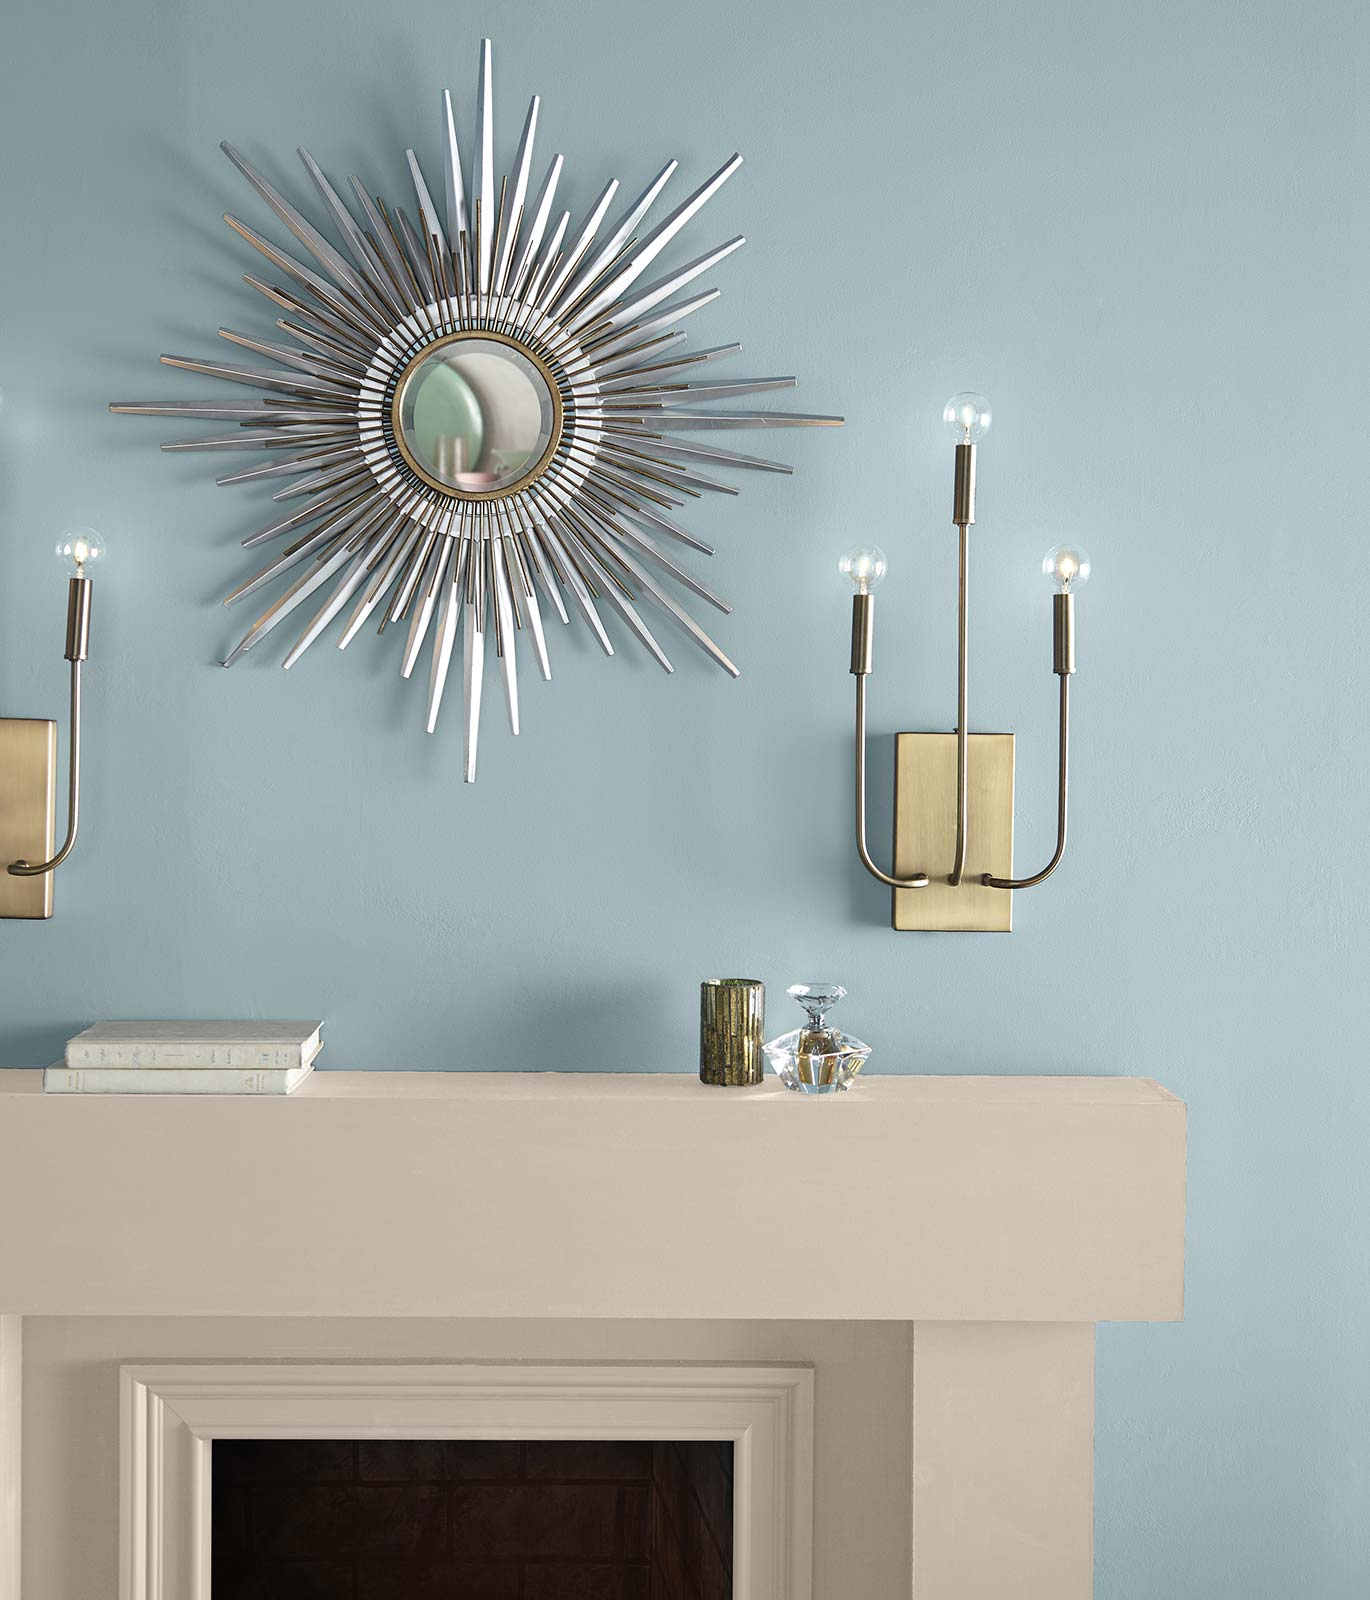 A tight crop of a cream colored fireplace against a denim blue painted wall inspiring a calm feeling